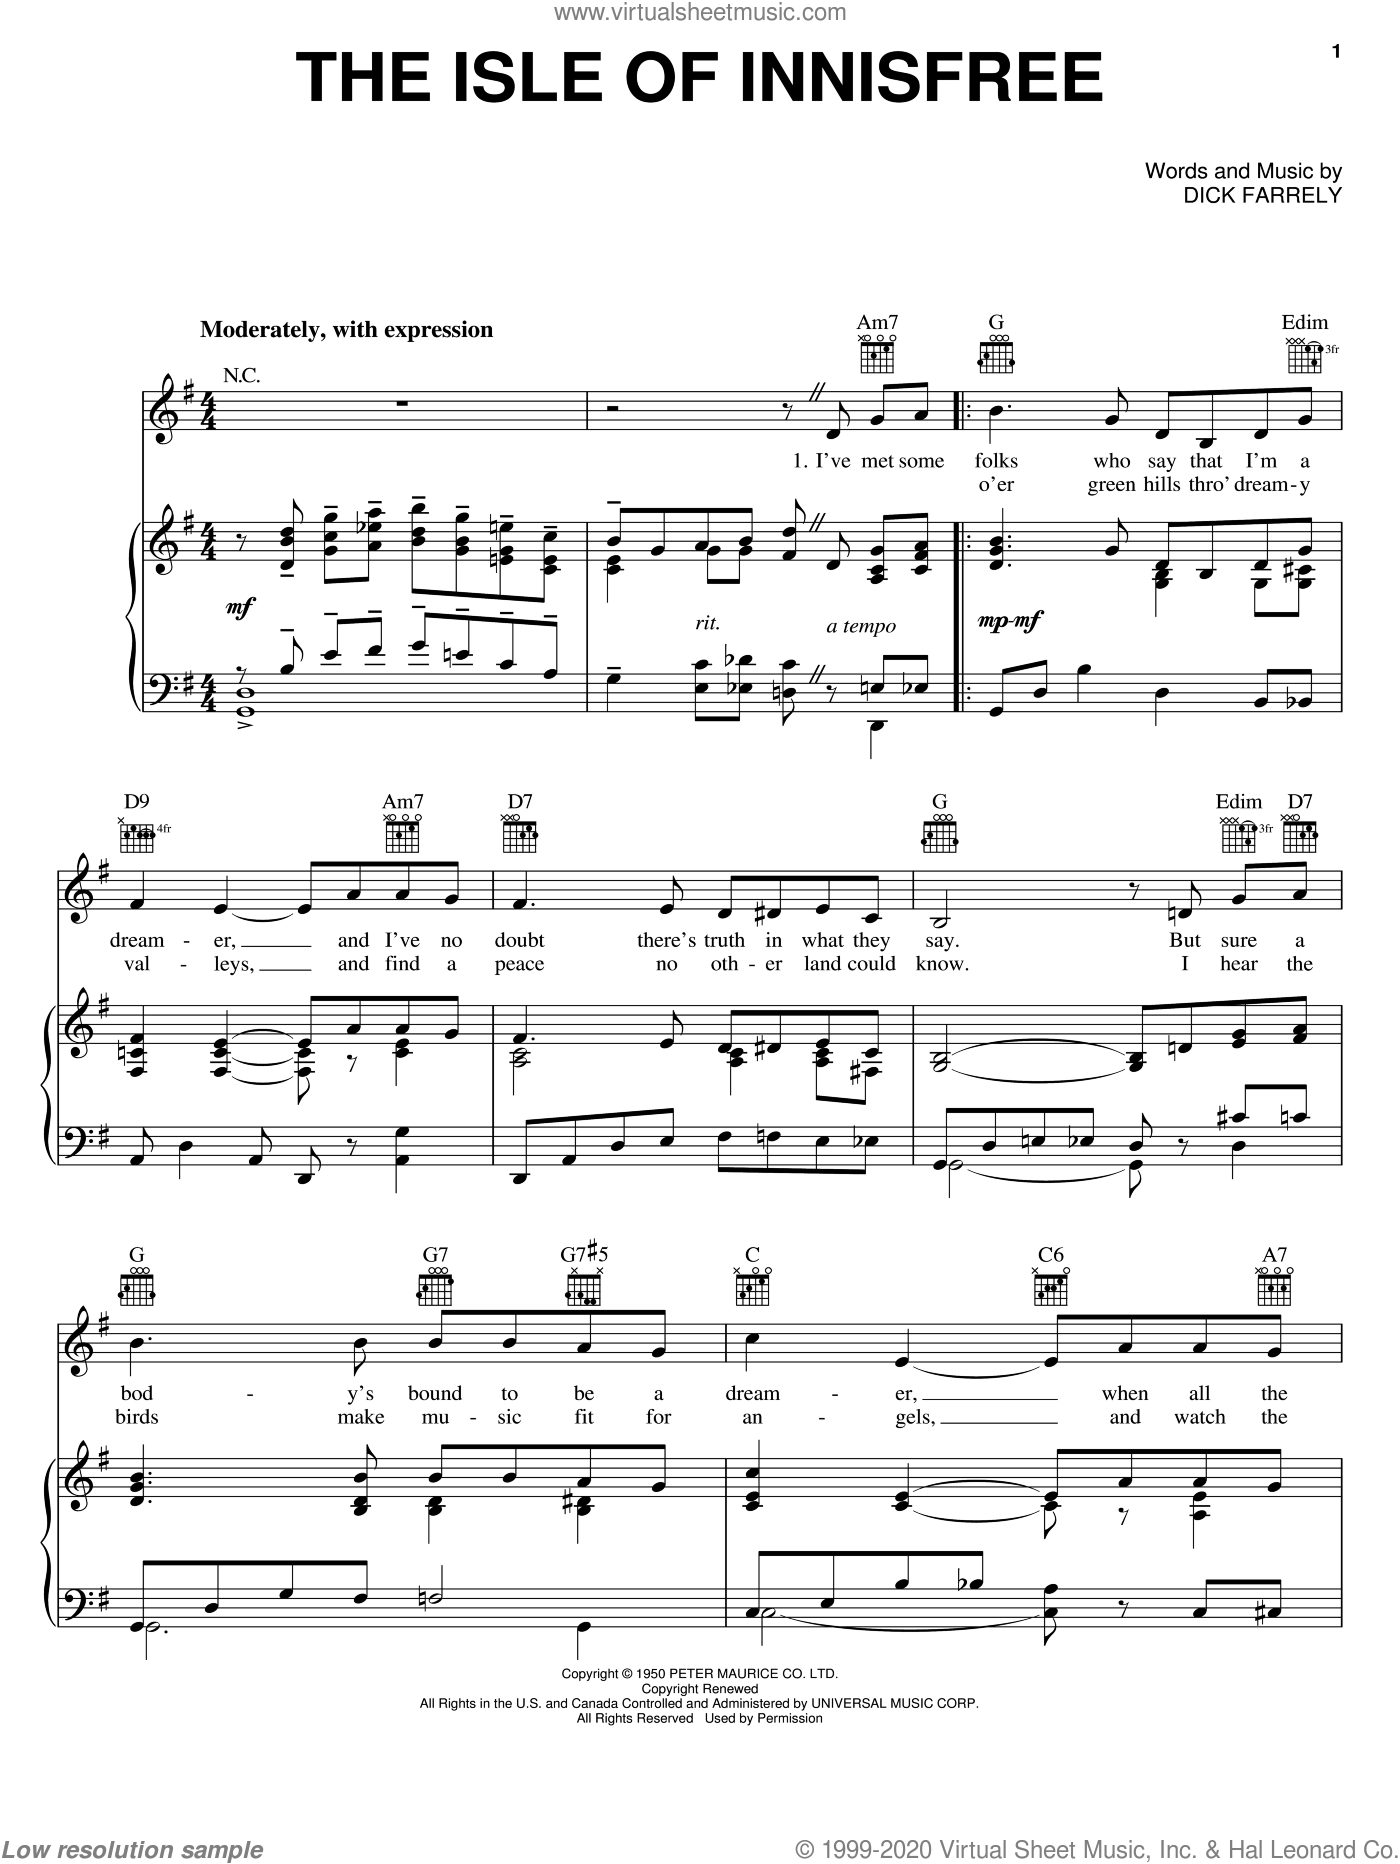 The Isle Of Innisfree sheet music for voice, piano or guitar by Dick Farrelly